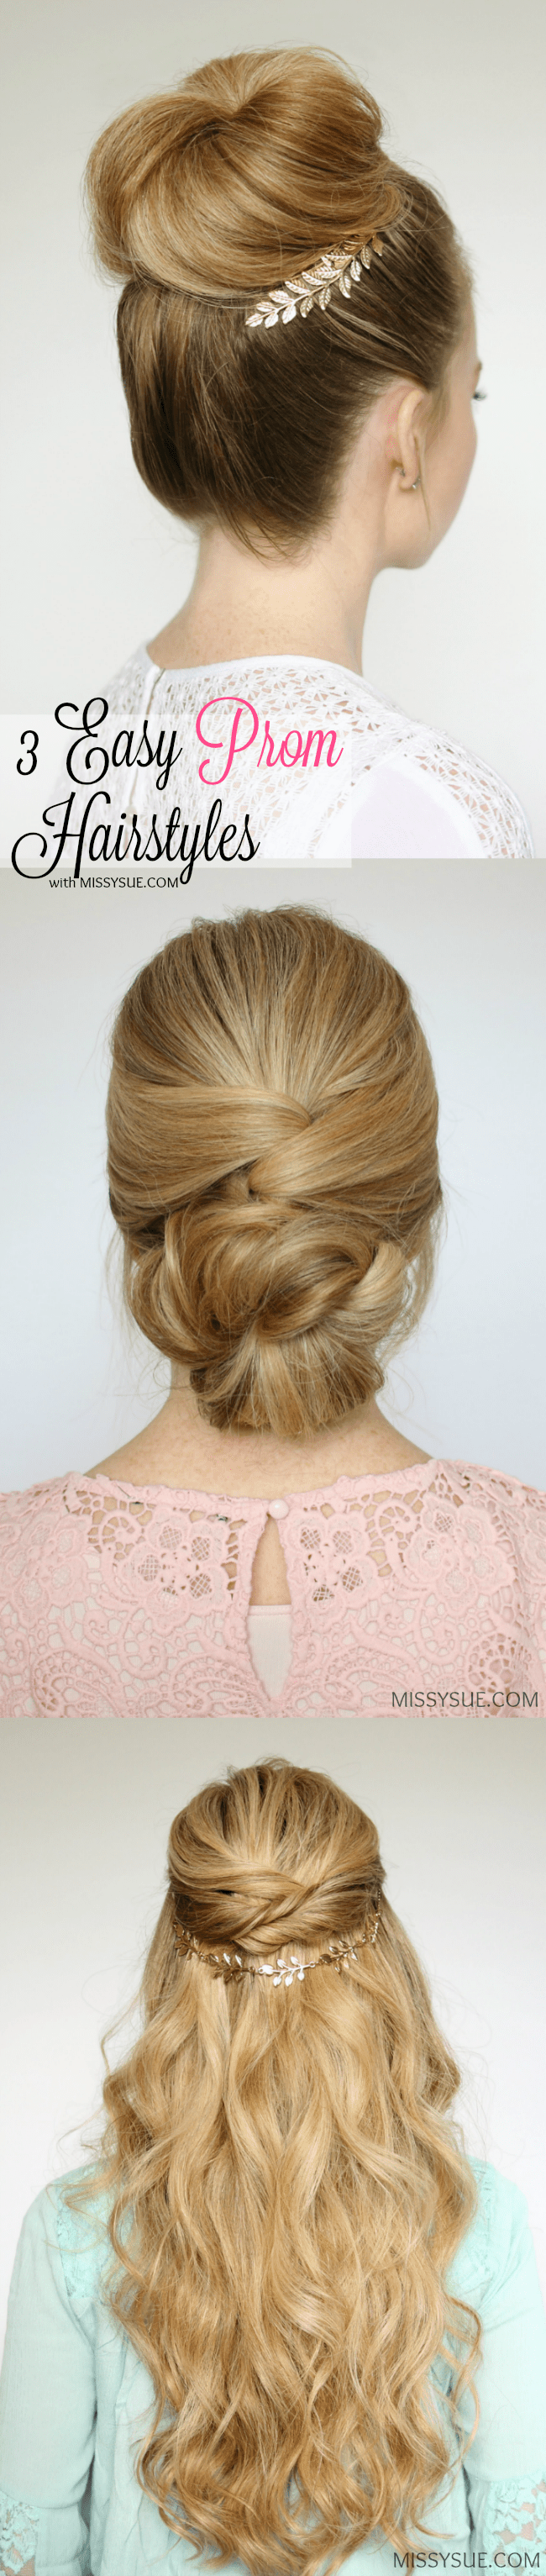 3-easy-hairstyles-prom-bridal